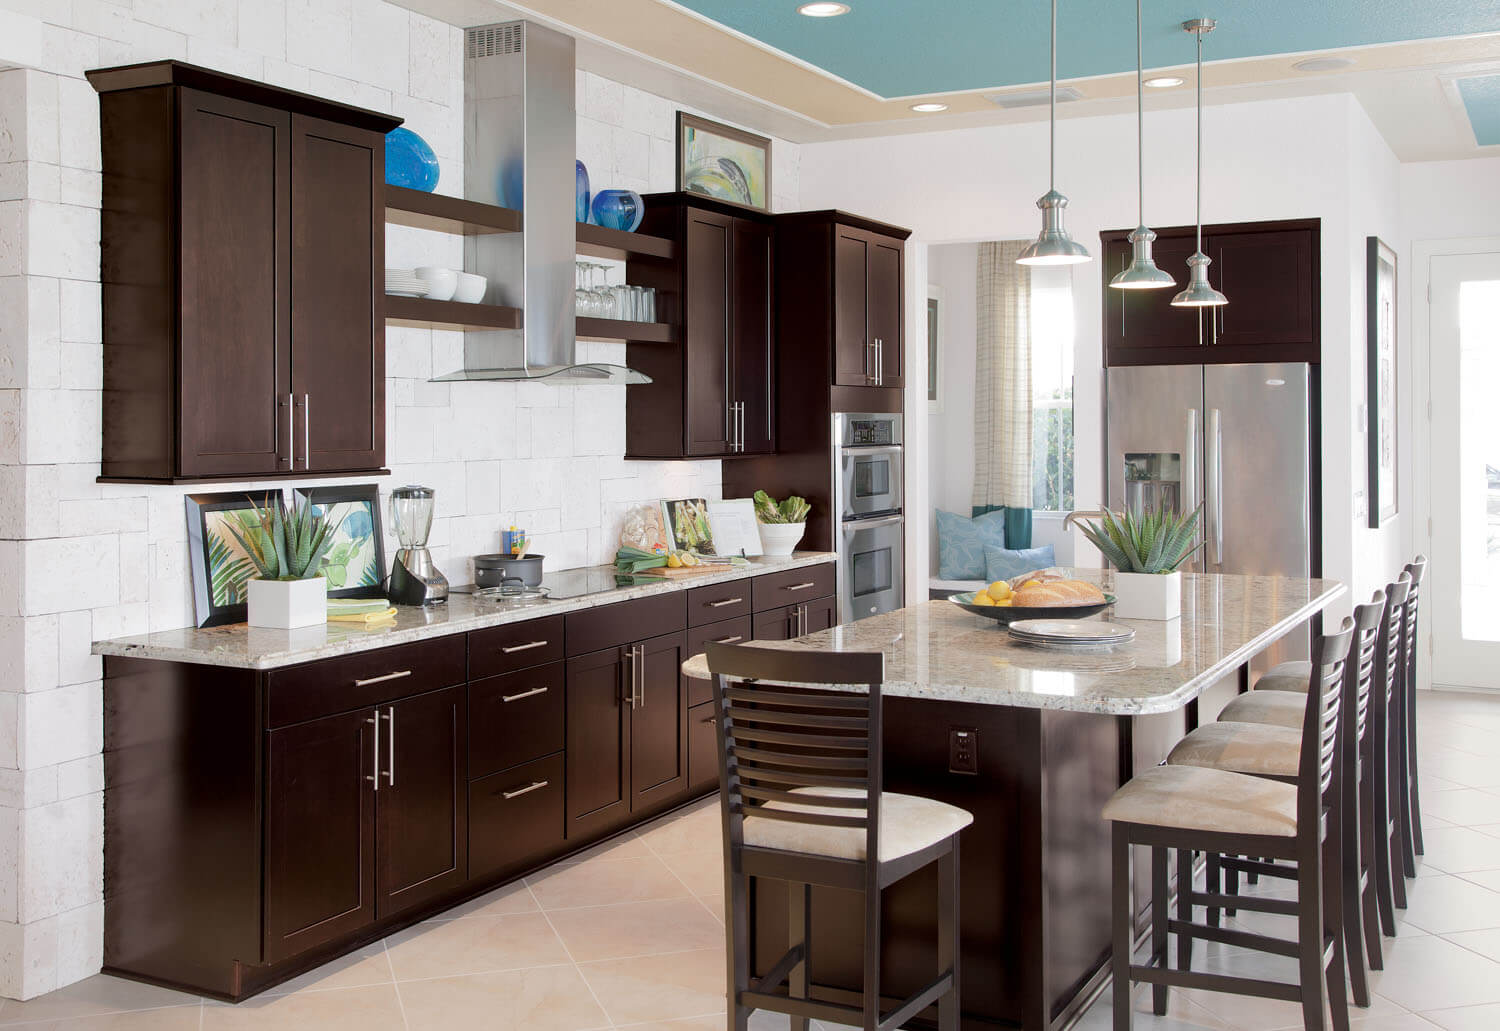 Builder Concept Homes Feature Timberlake Cabinetry At IBS 2012